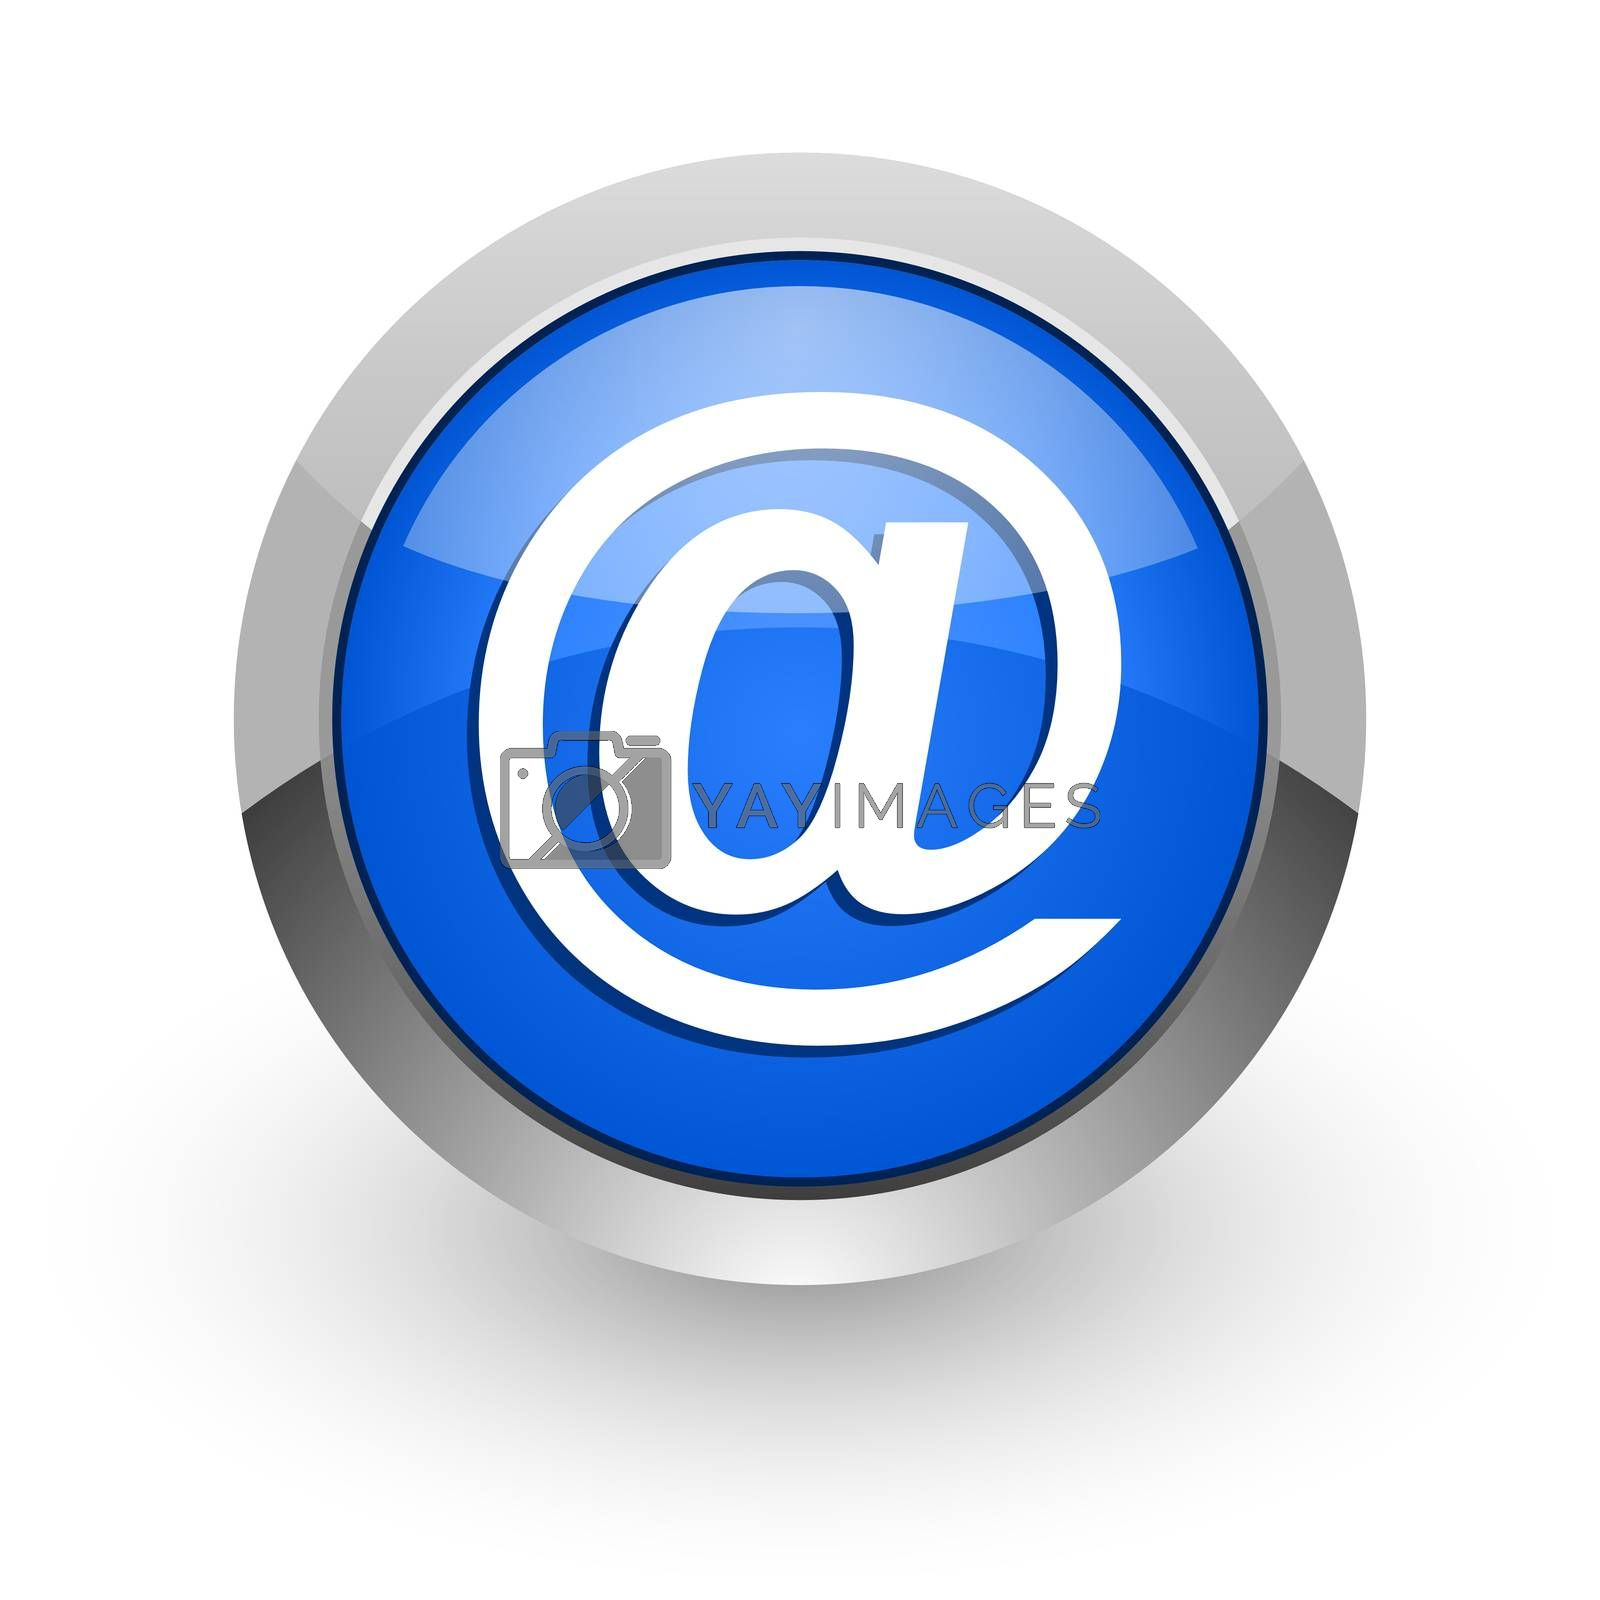 Royalty free image of email blue glossy web icon by alexwhite